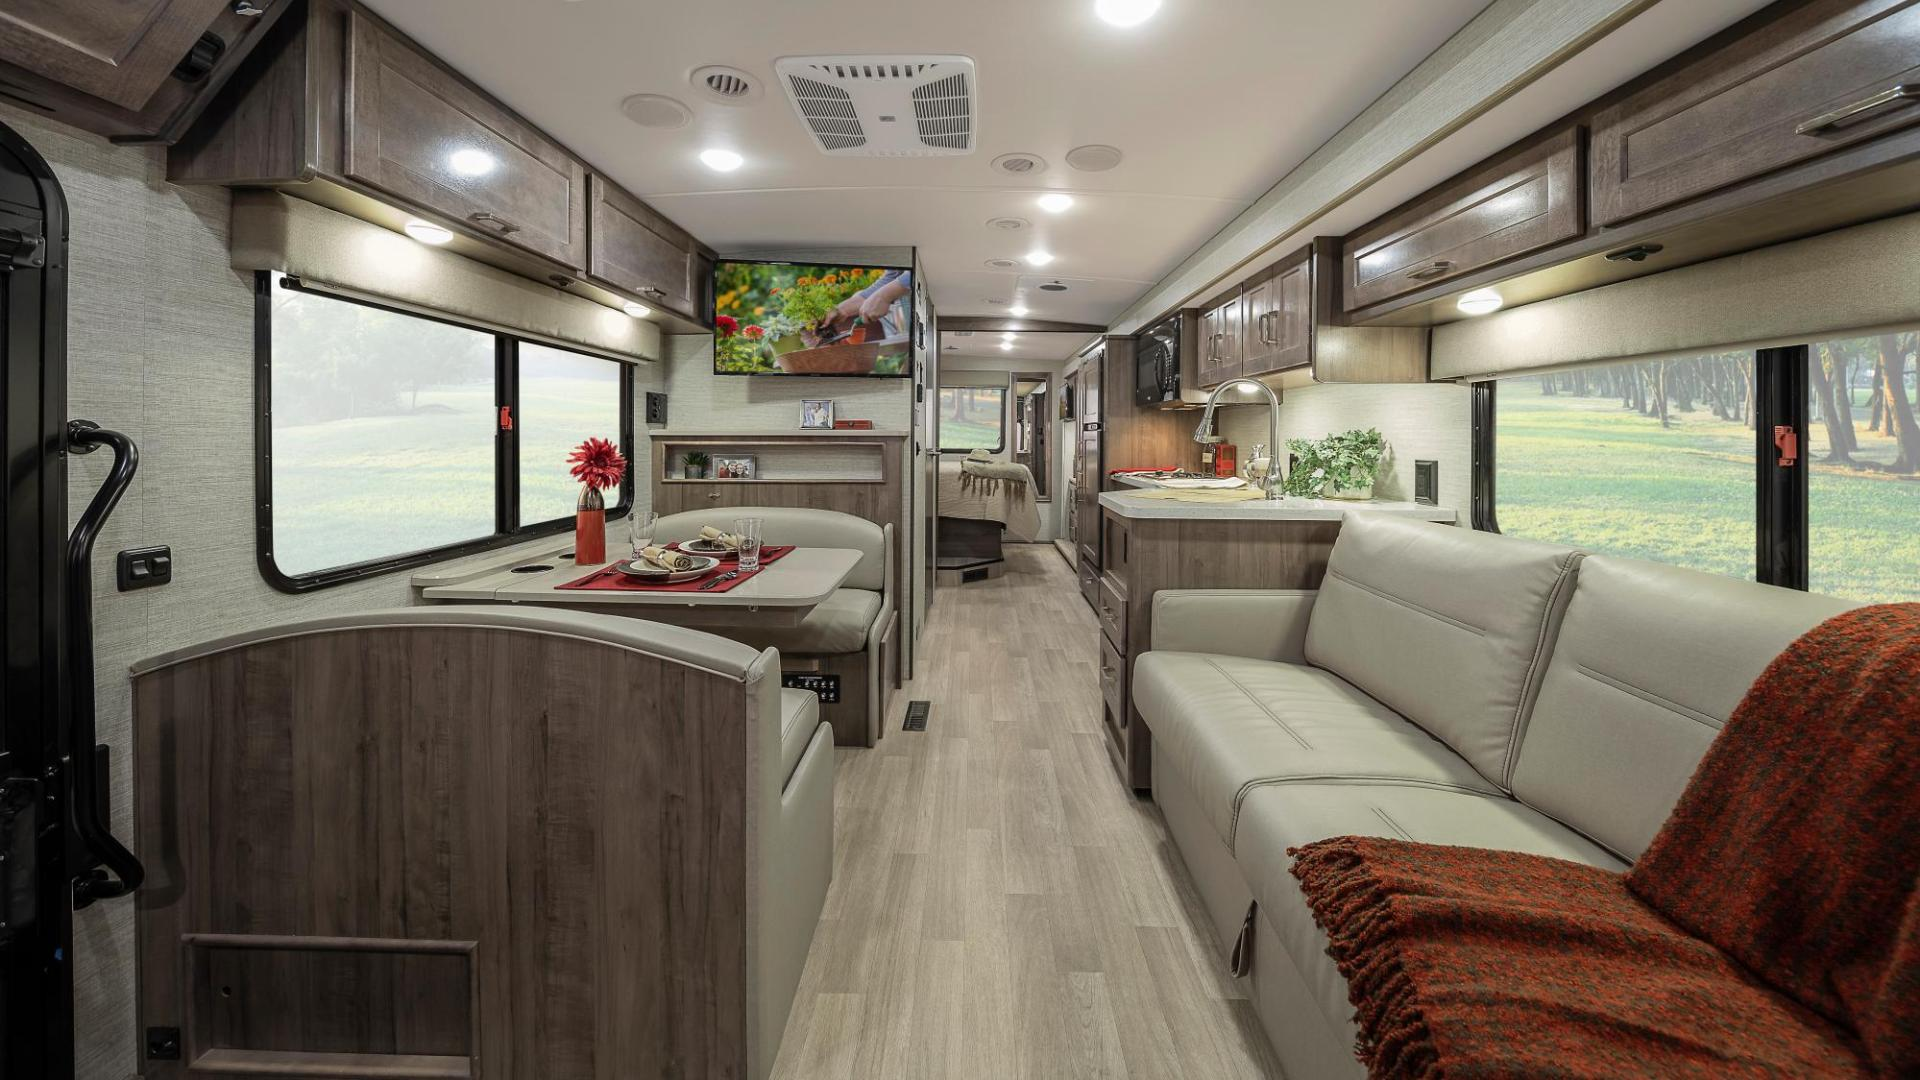 Looking to the back of the motorhome you can see the spacious living area in the motorhome.